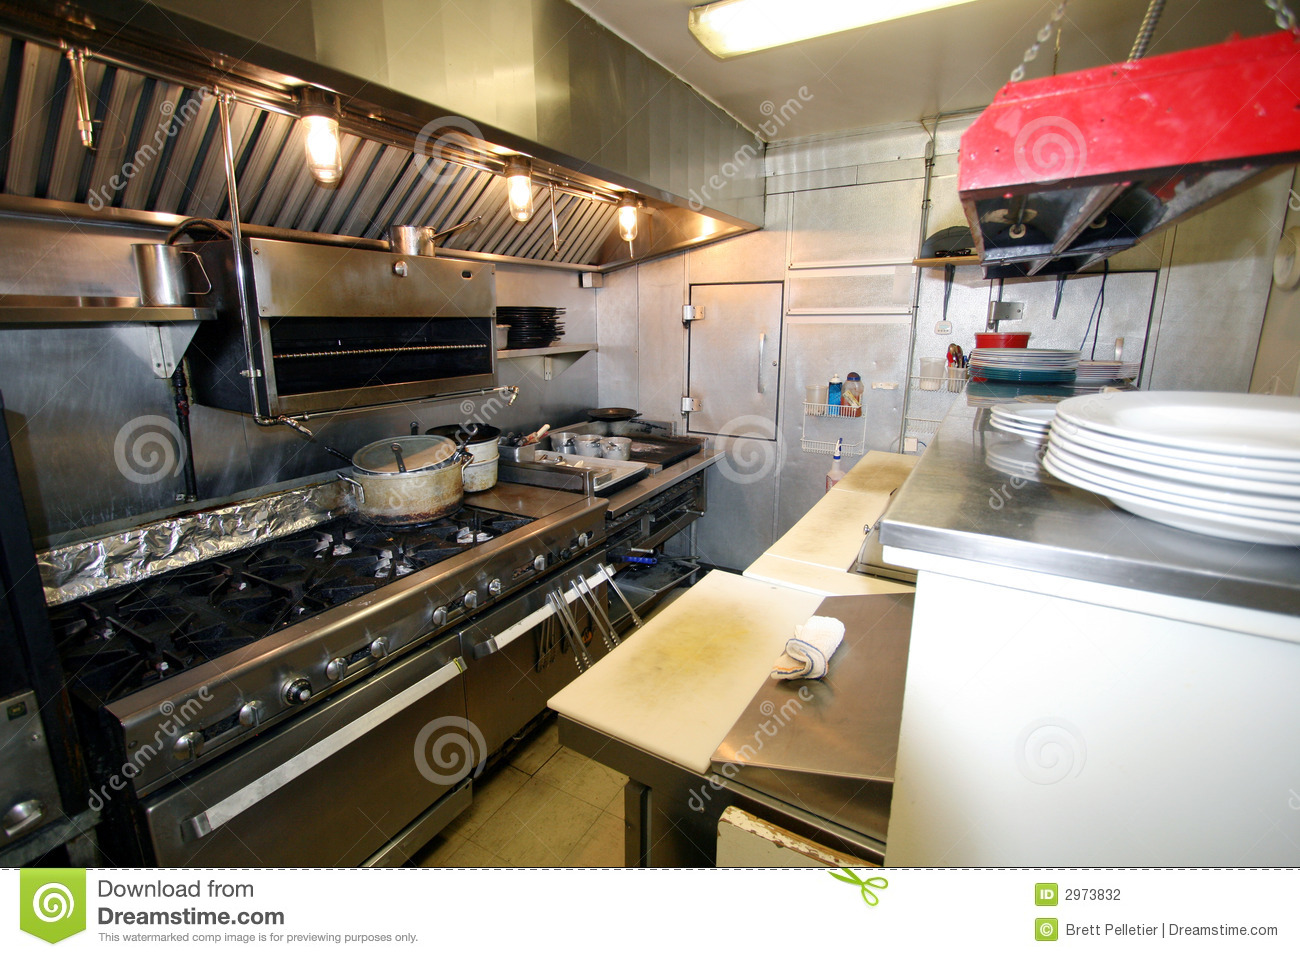 Small Kitchen In A Restaurant Stock Photography - Image: 2973832